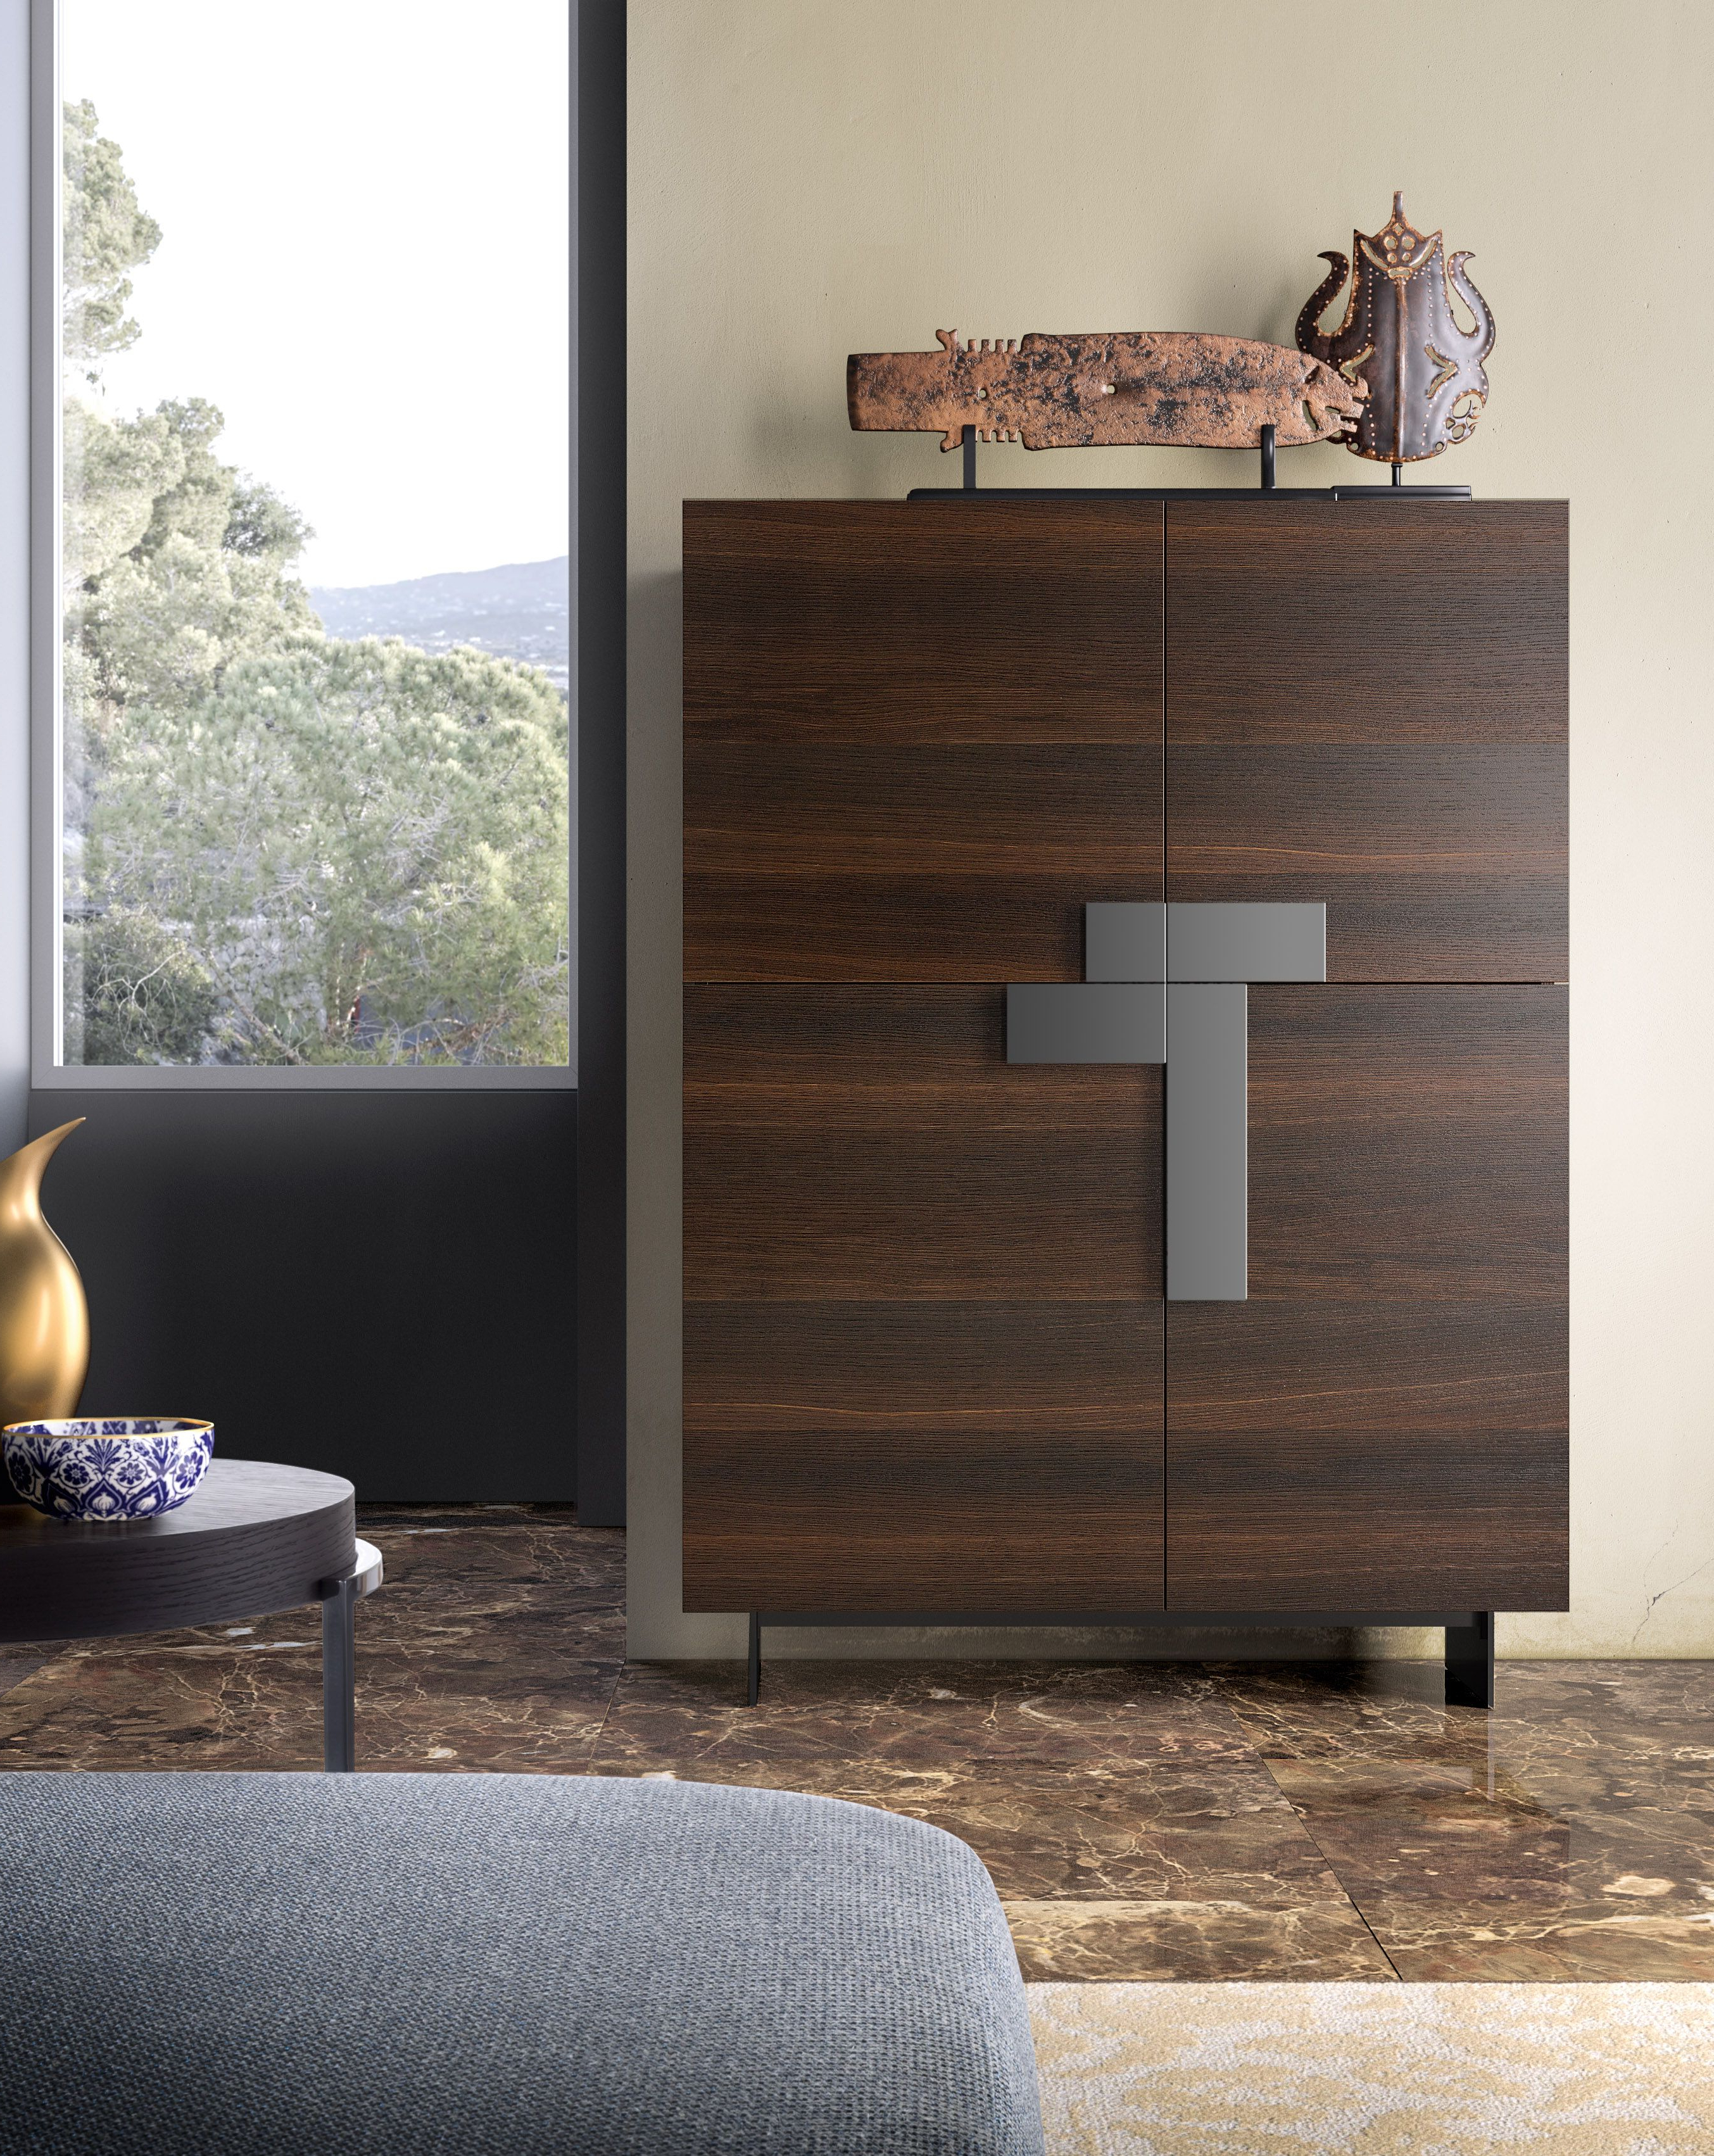 Most Recent Ginevra Sideboard With Burnt Oak Structure And Fronts, Titanium With Regard To Burnt Oak Wood Sideboards (Gallery 2 of 20)